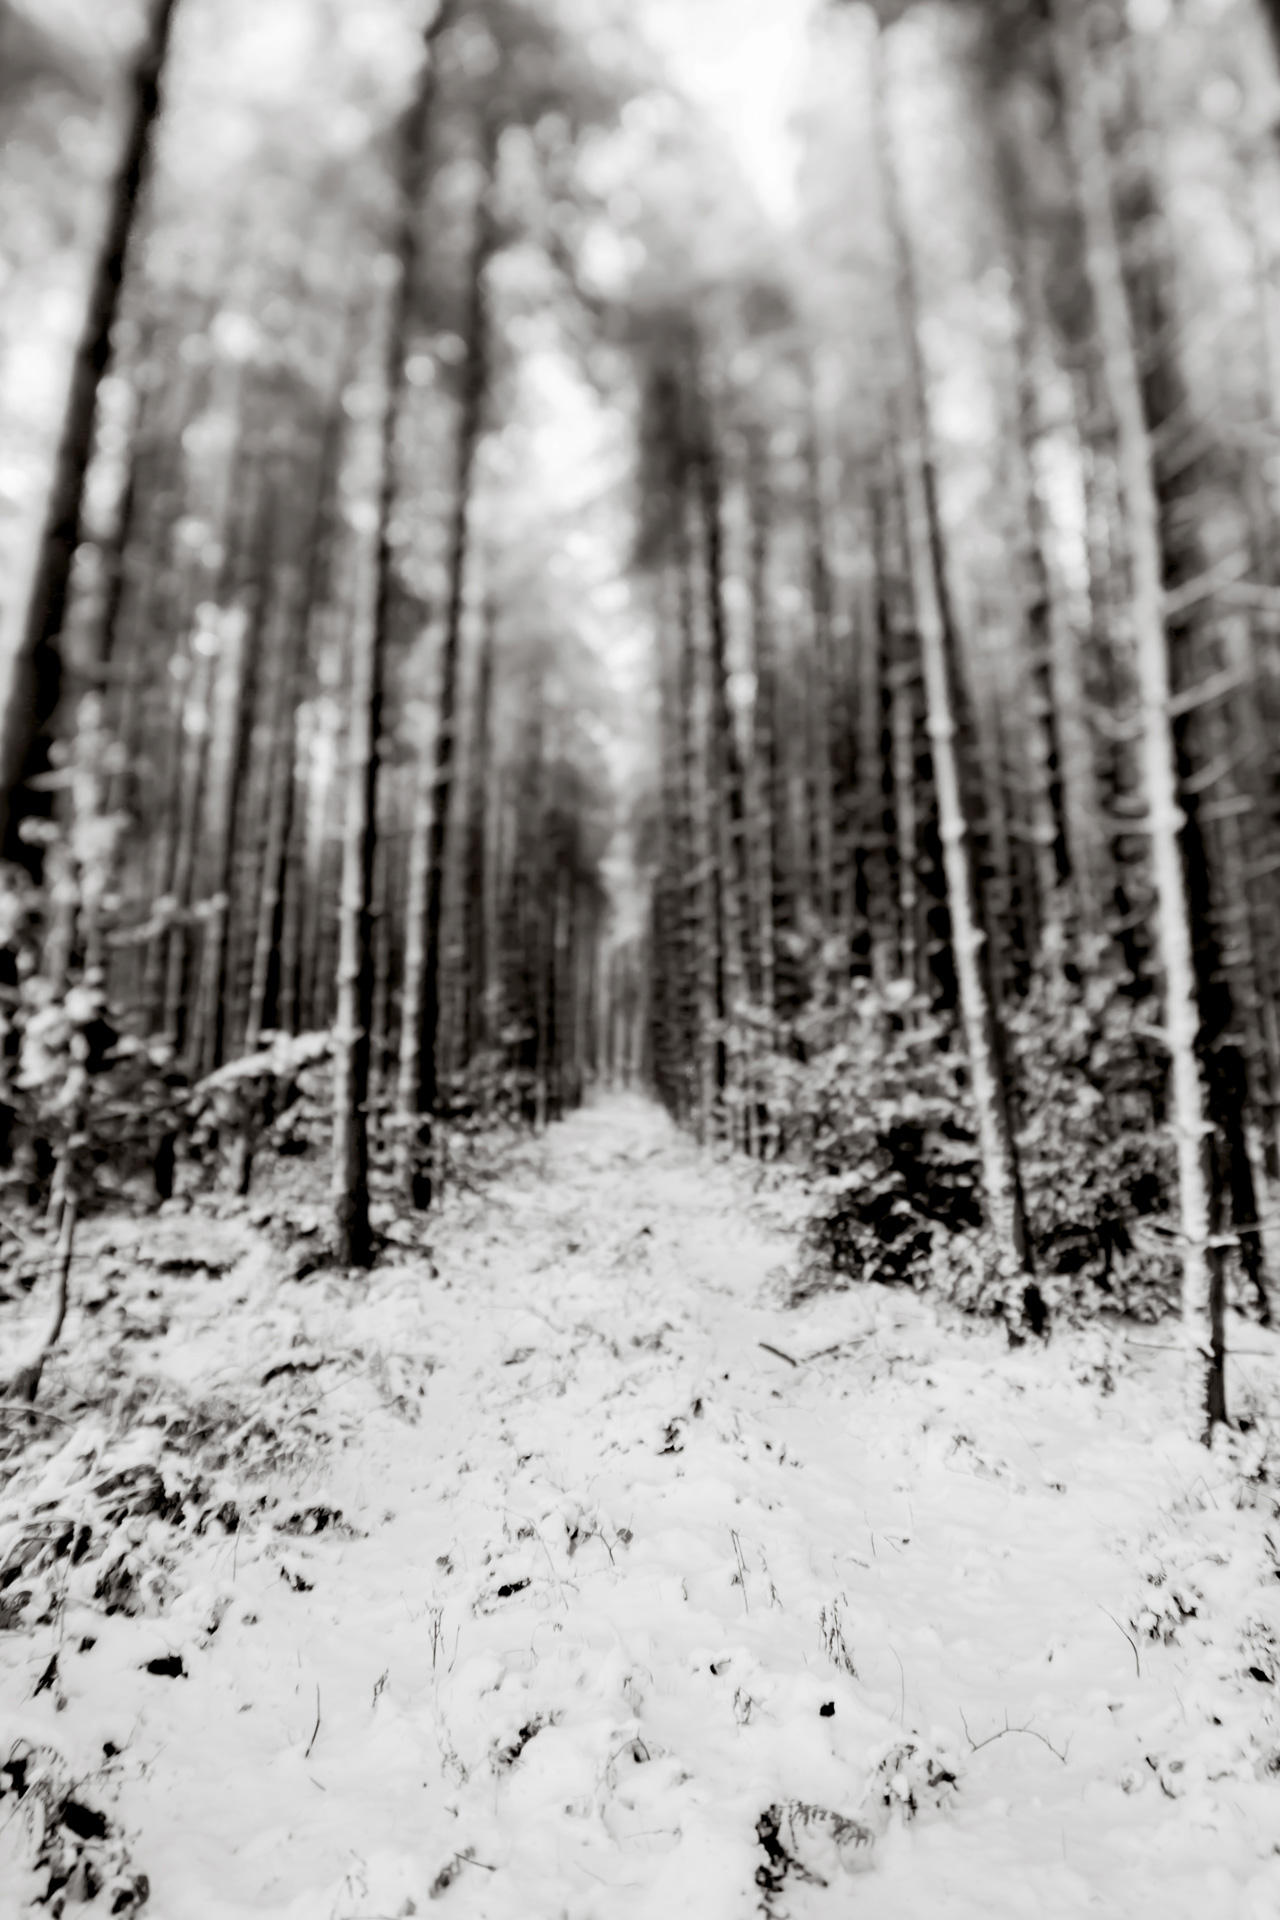 Photographing Snow. Photography Tips for Beginners